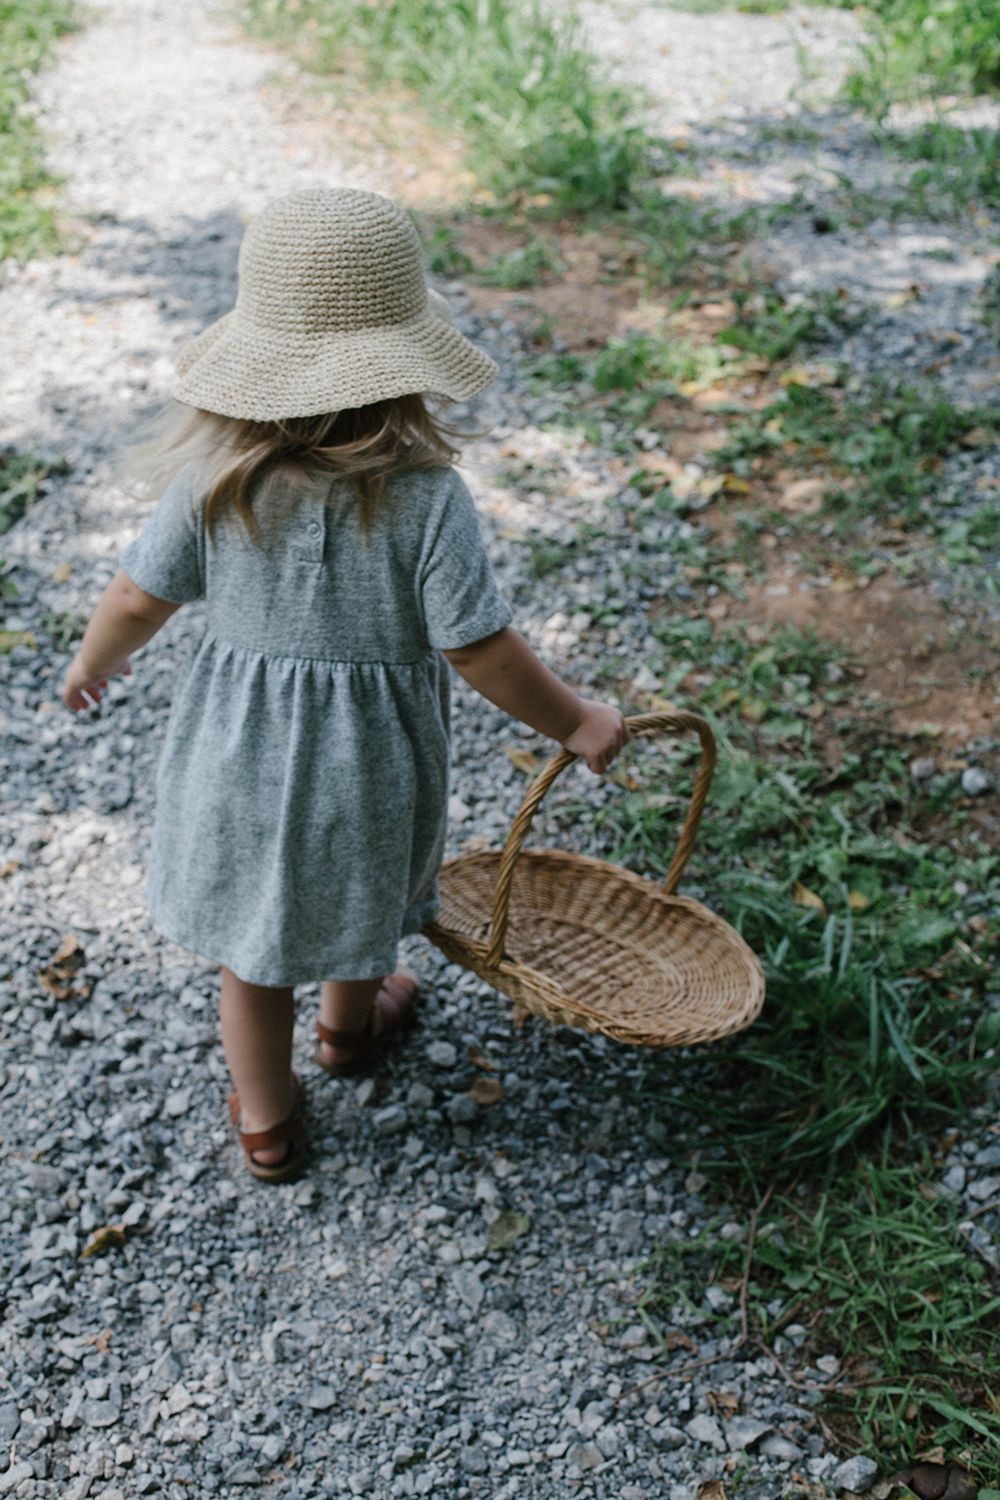 Little girl in a jean dress and sun hat carrying a basket down a gravel pathway